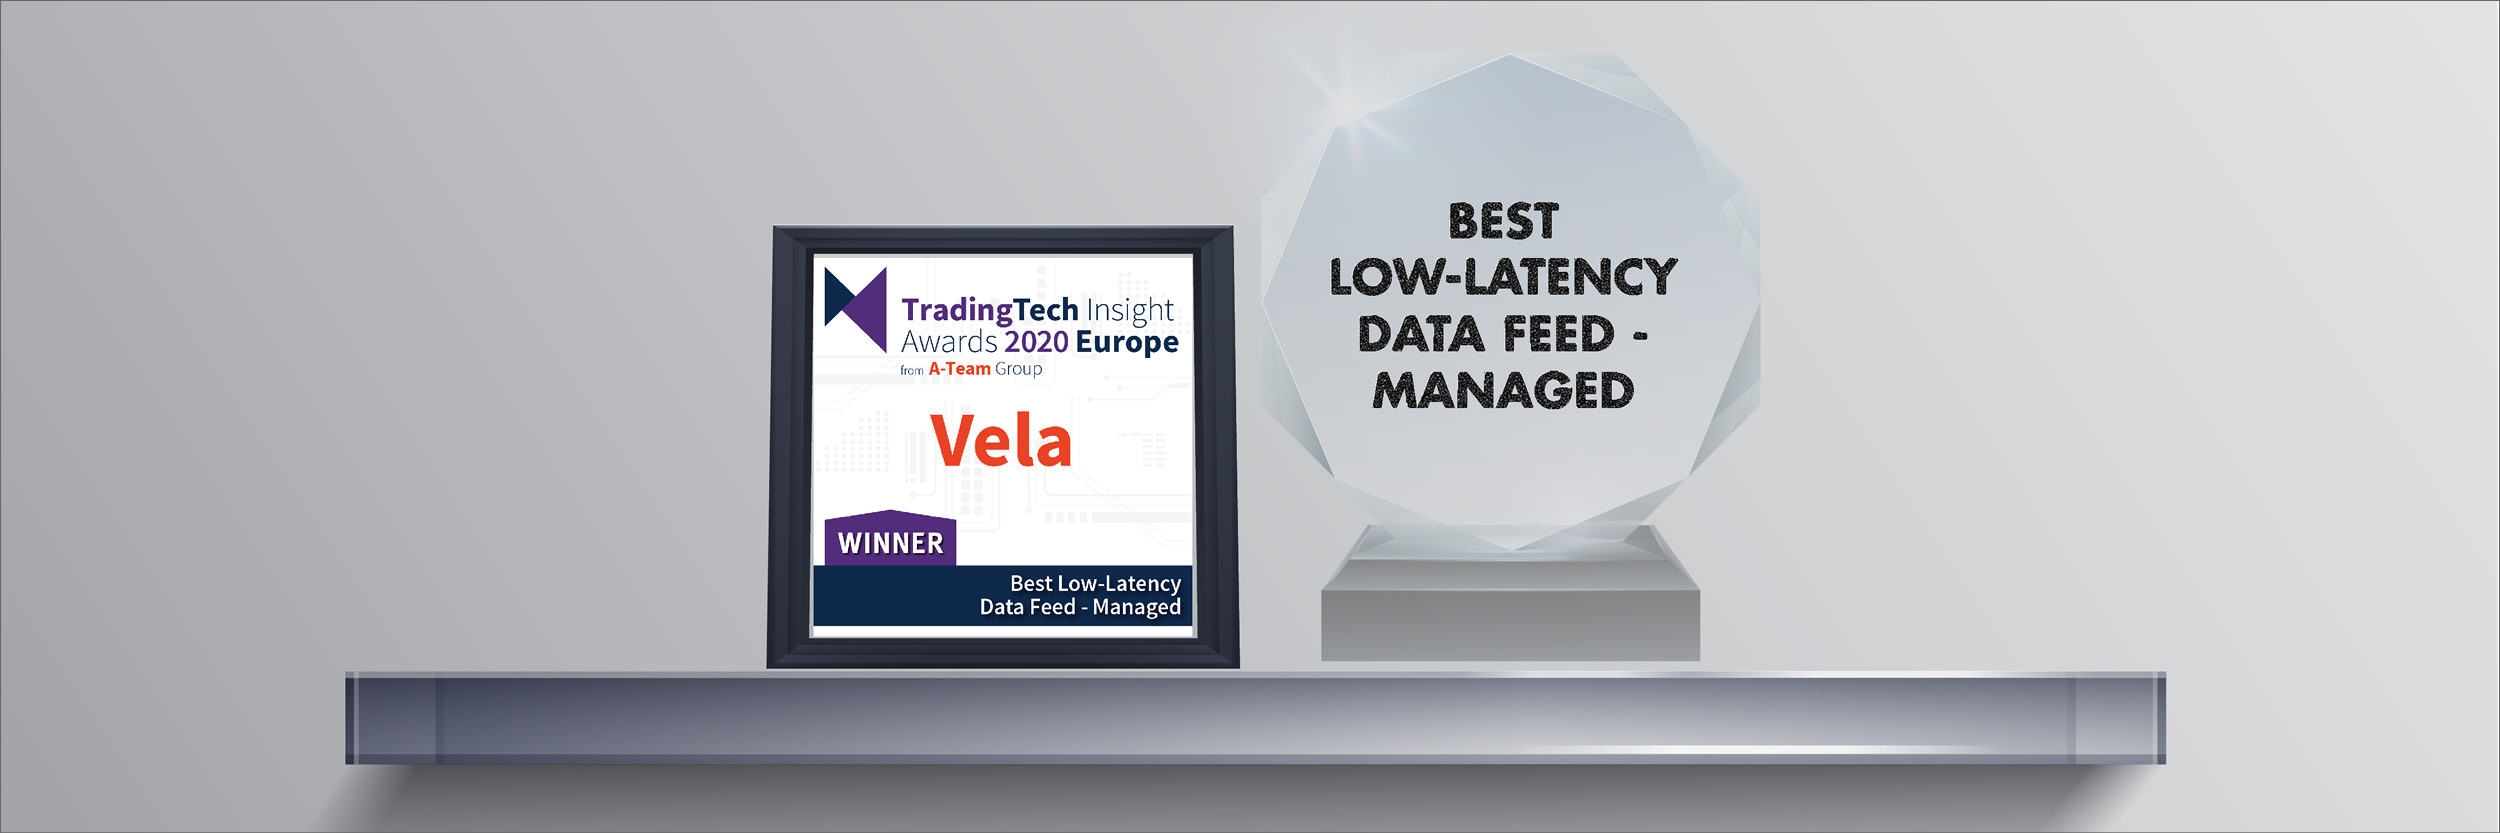 best low latency data feed managed